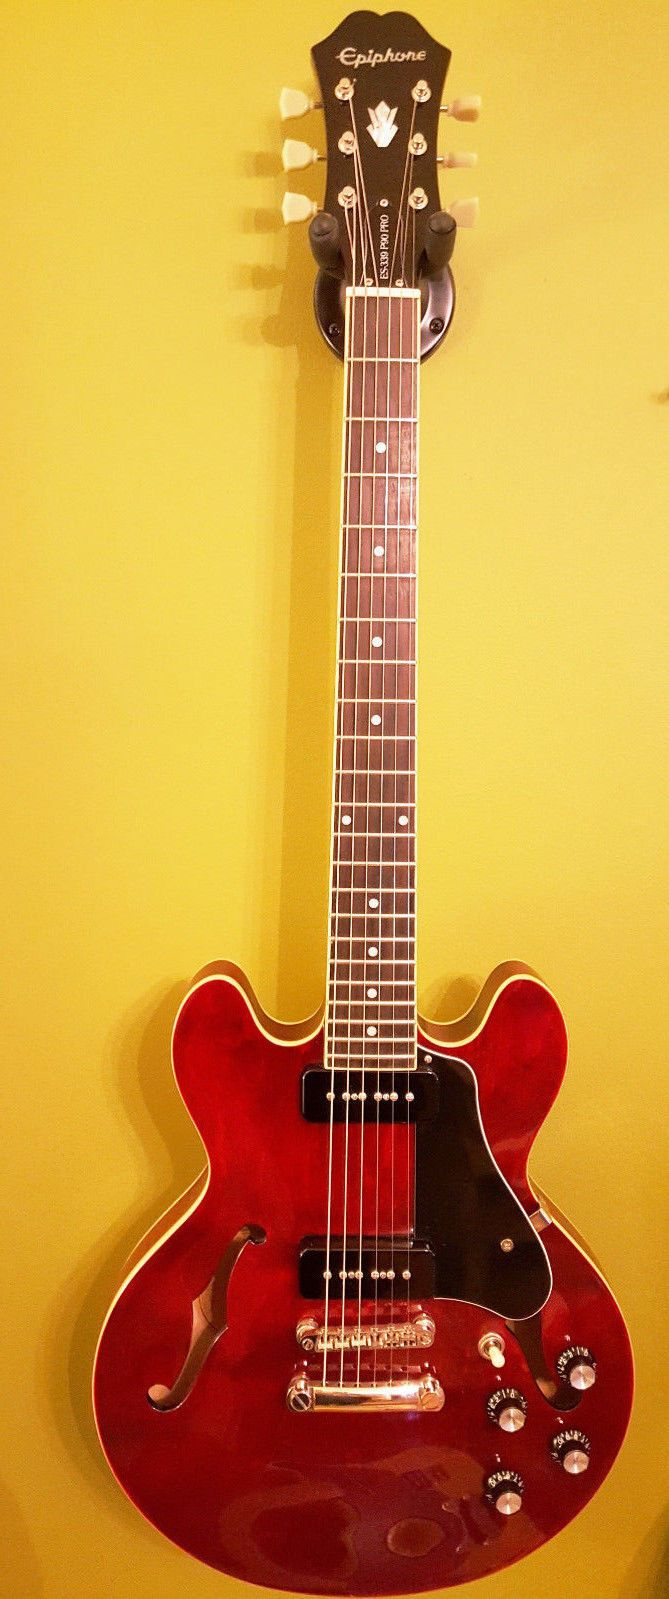 Epiphone ES 339 P-90 Pro hollowbody electric guitar with Alnico V P